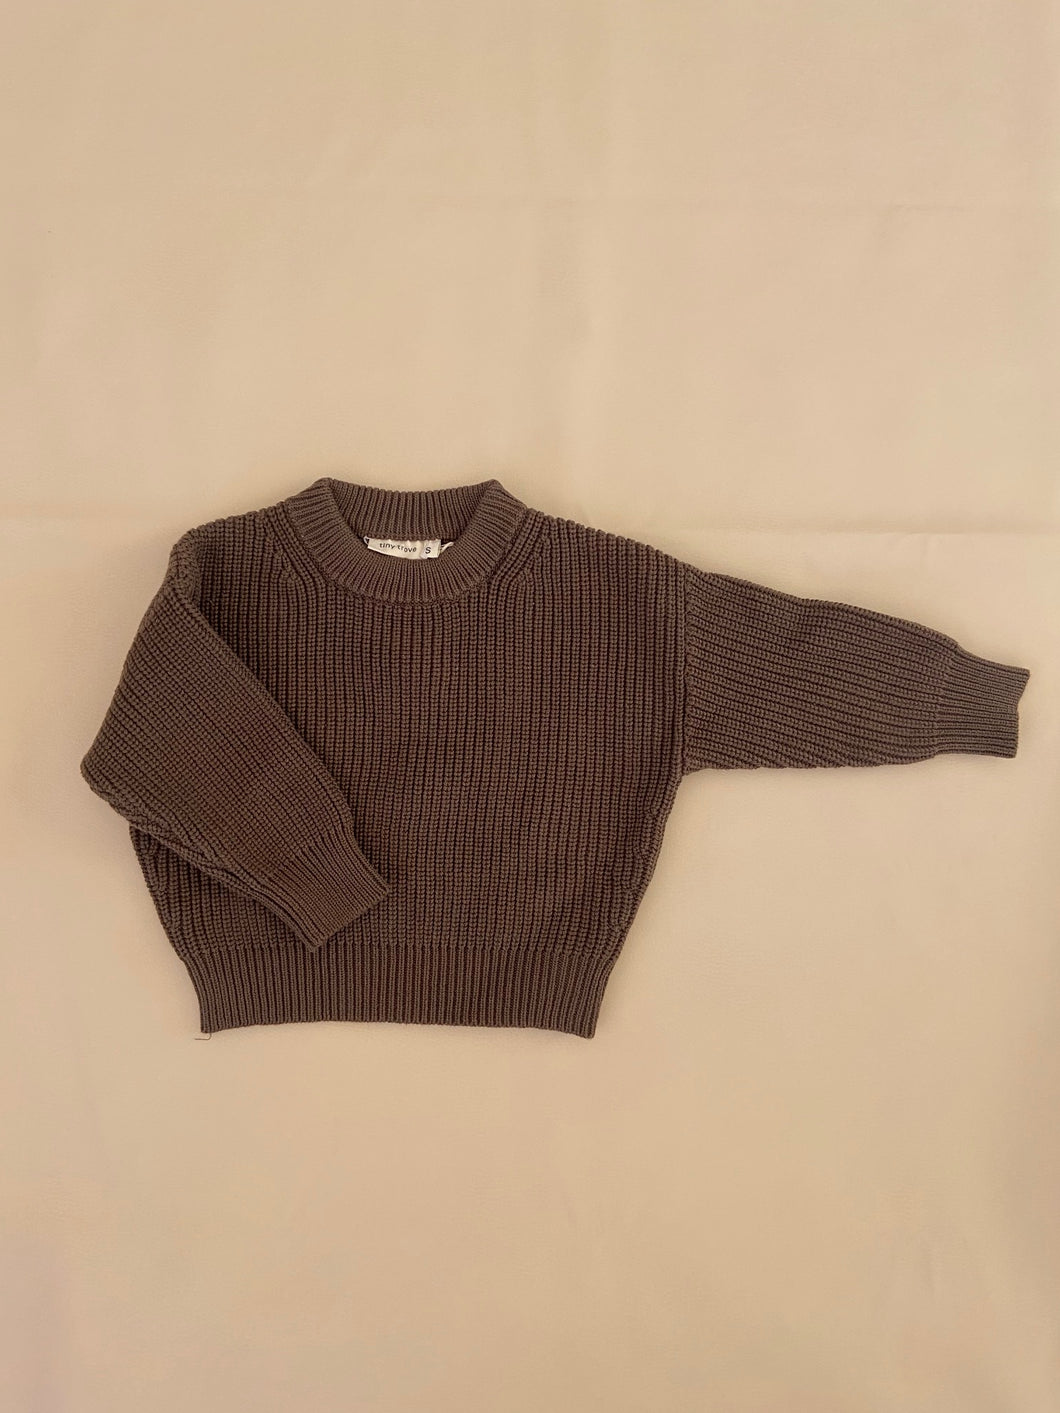 Clayton Knit Jumper - Olive